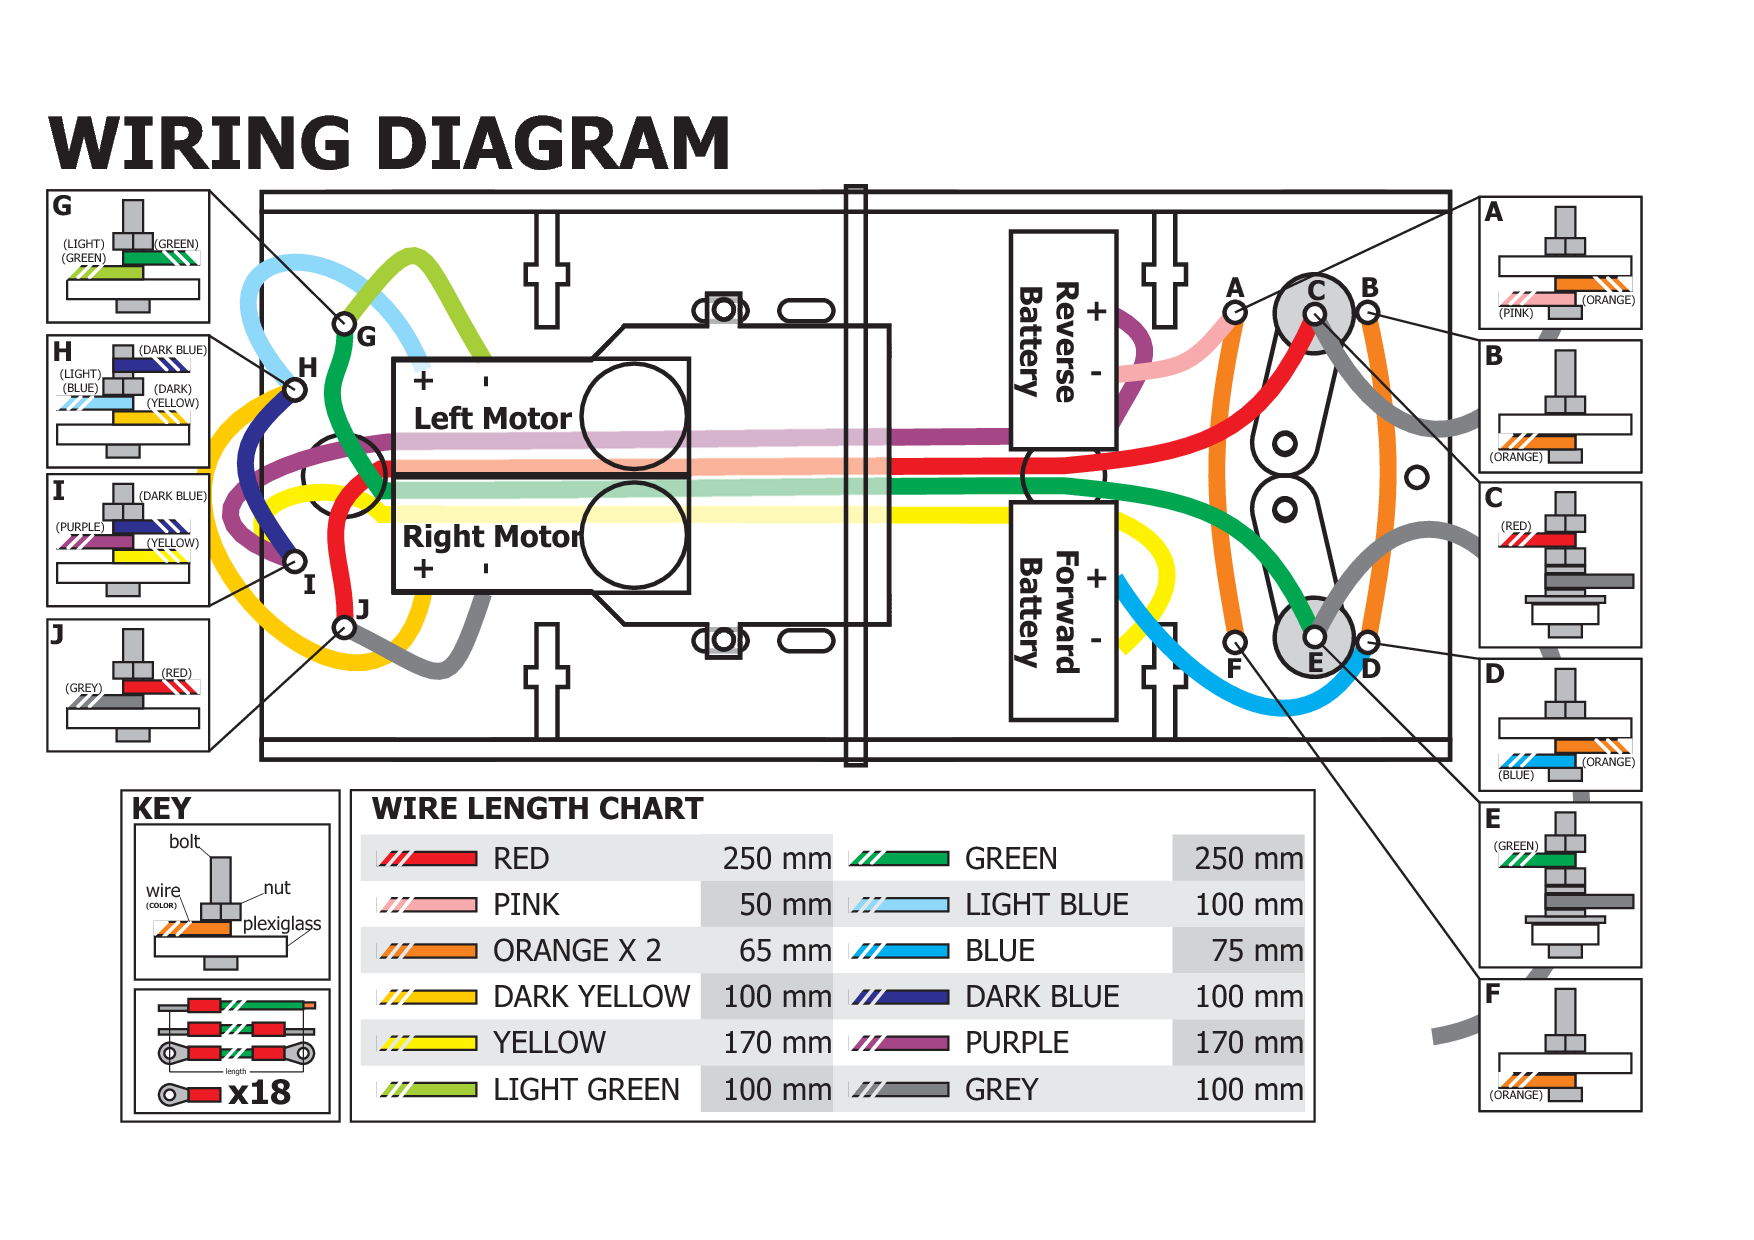 DIAGRAM] Peter Green Wiring Diagram FULL Version HD Quality Wiring Diagram  - 1WIRINGGUIDE1.ARBREDESVOIX.FRarbredesvoix.fr